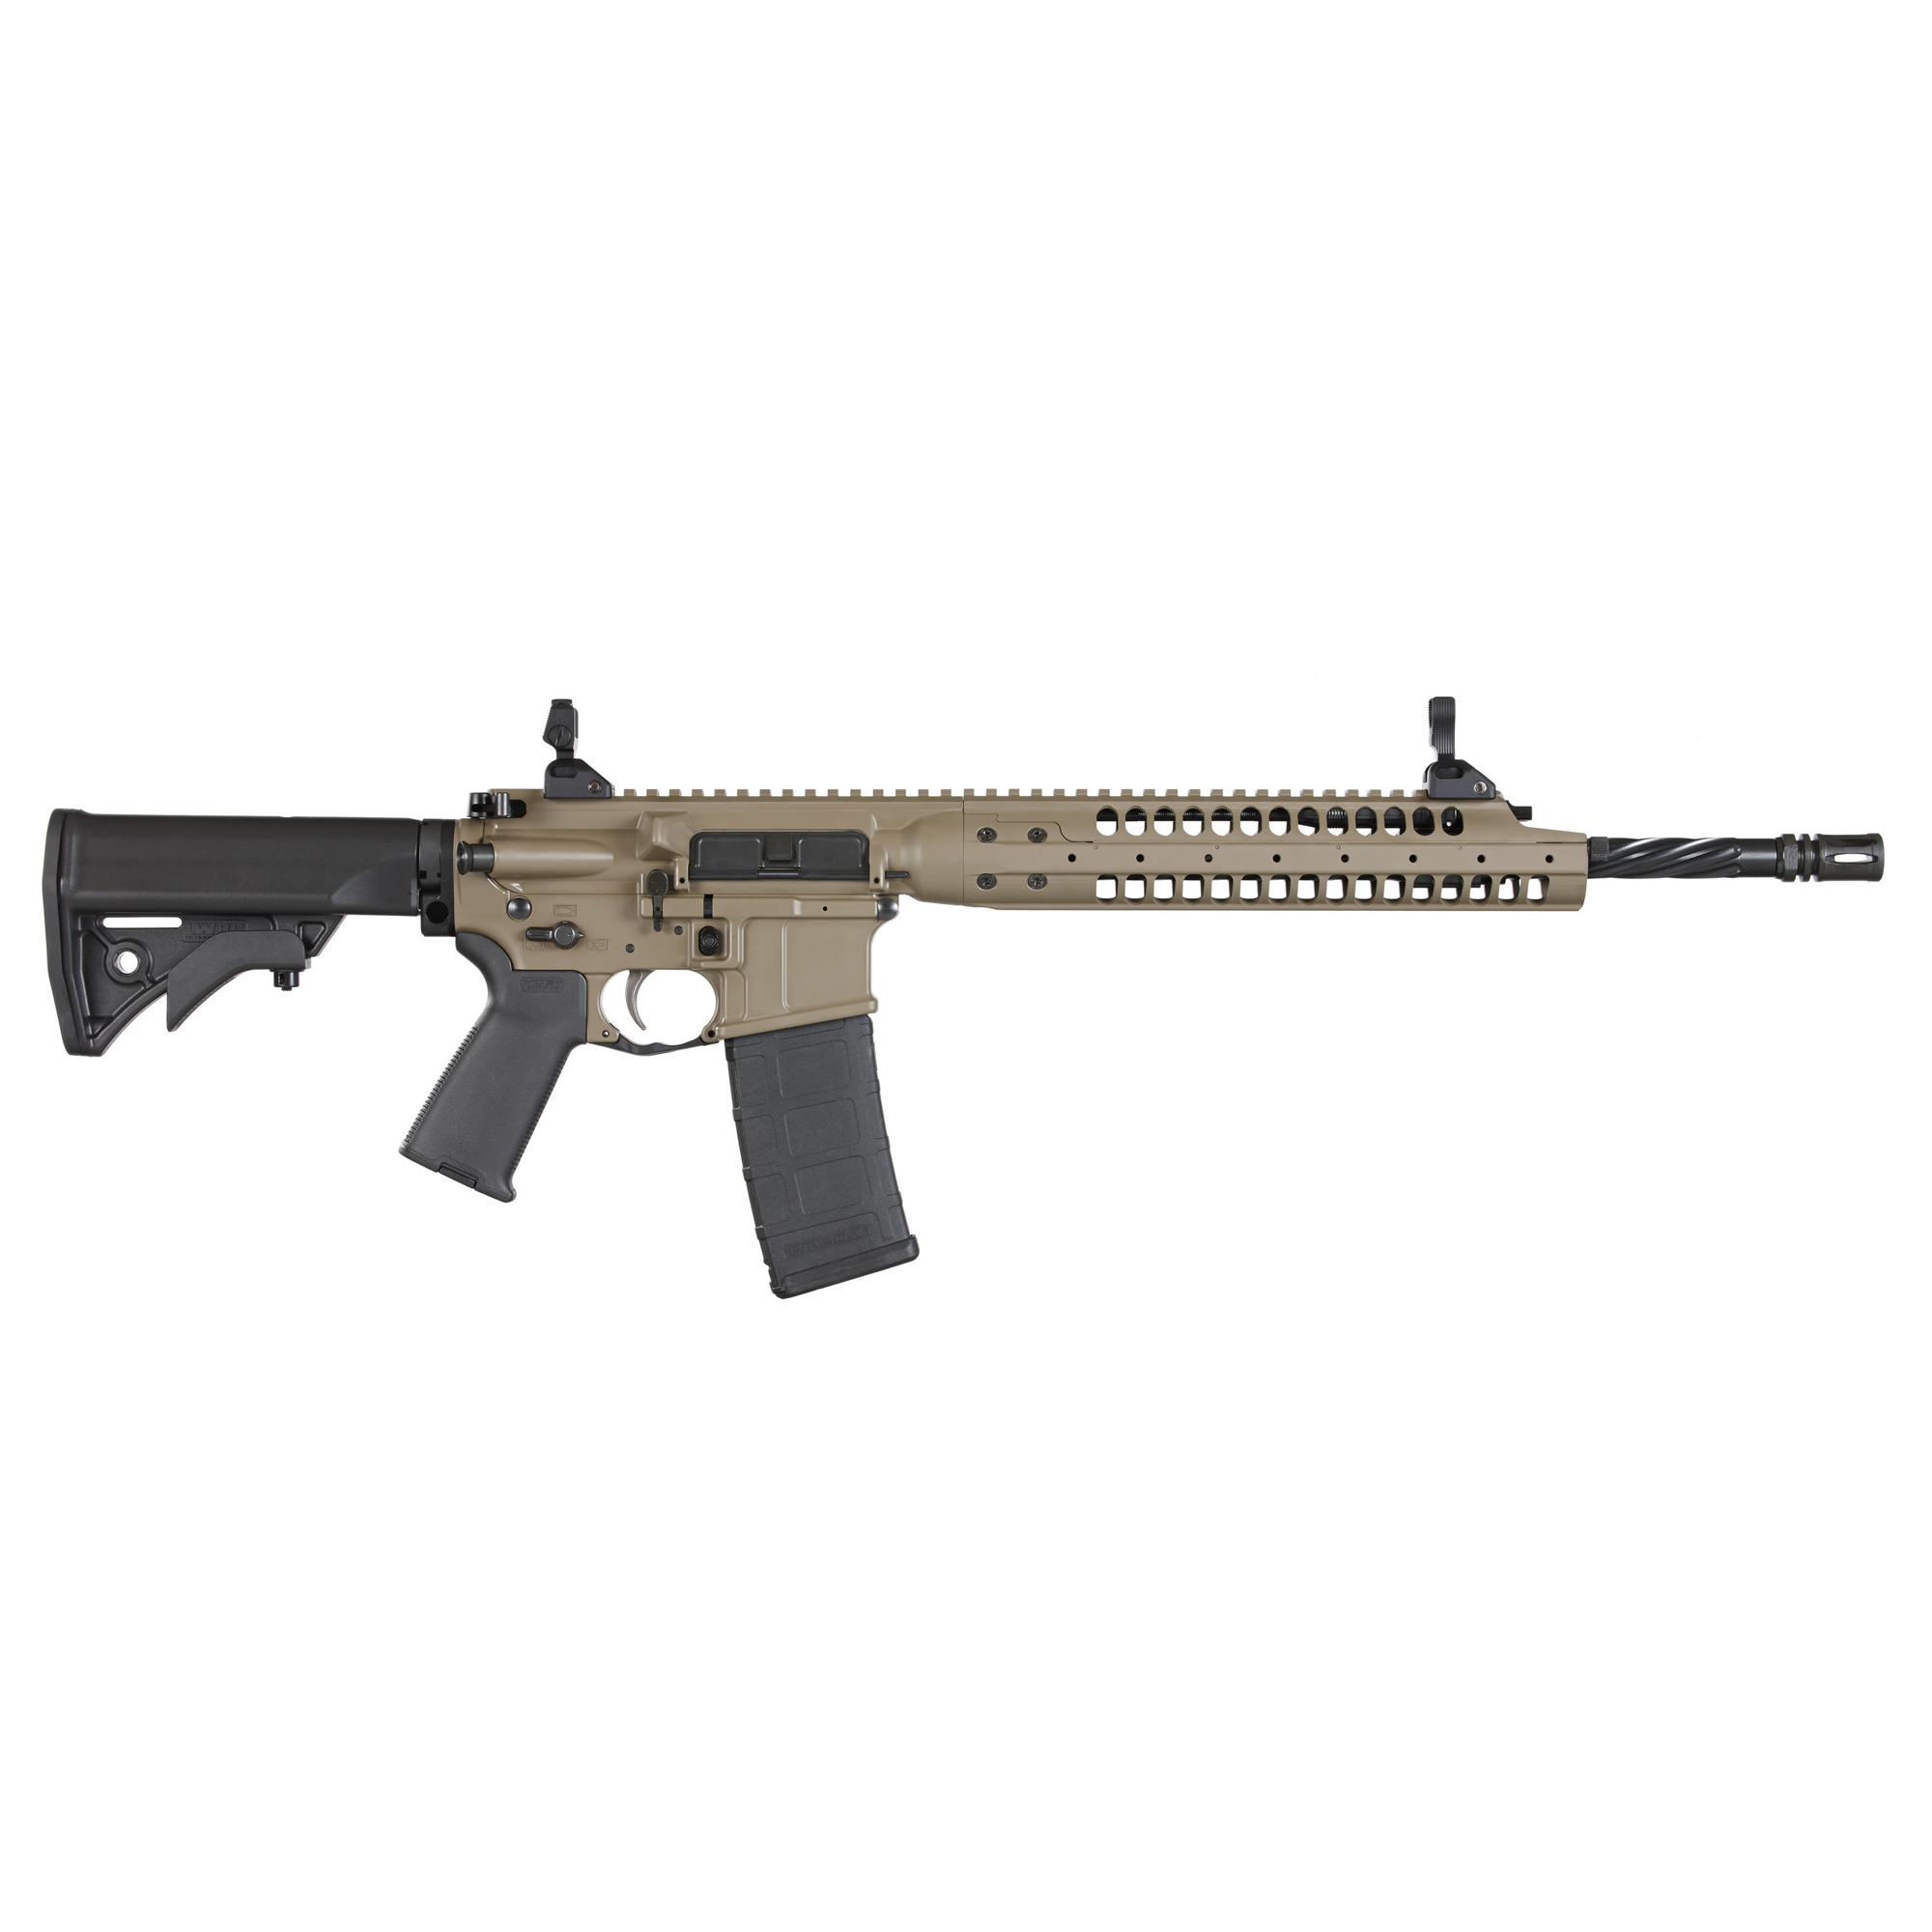 "Directly descended from the rifles developed by LWRCI(TM) to meet the requirements for the U.S. Army Individual Carbine program"" the IC-A5 is built for high performance."